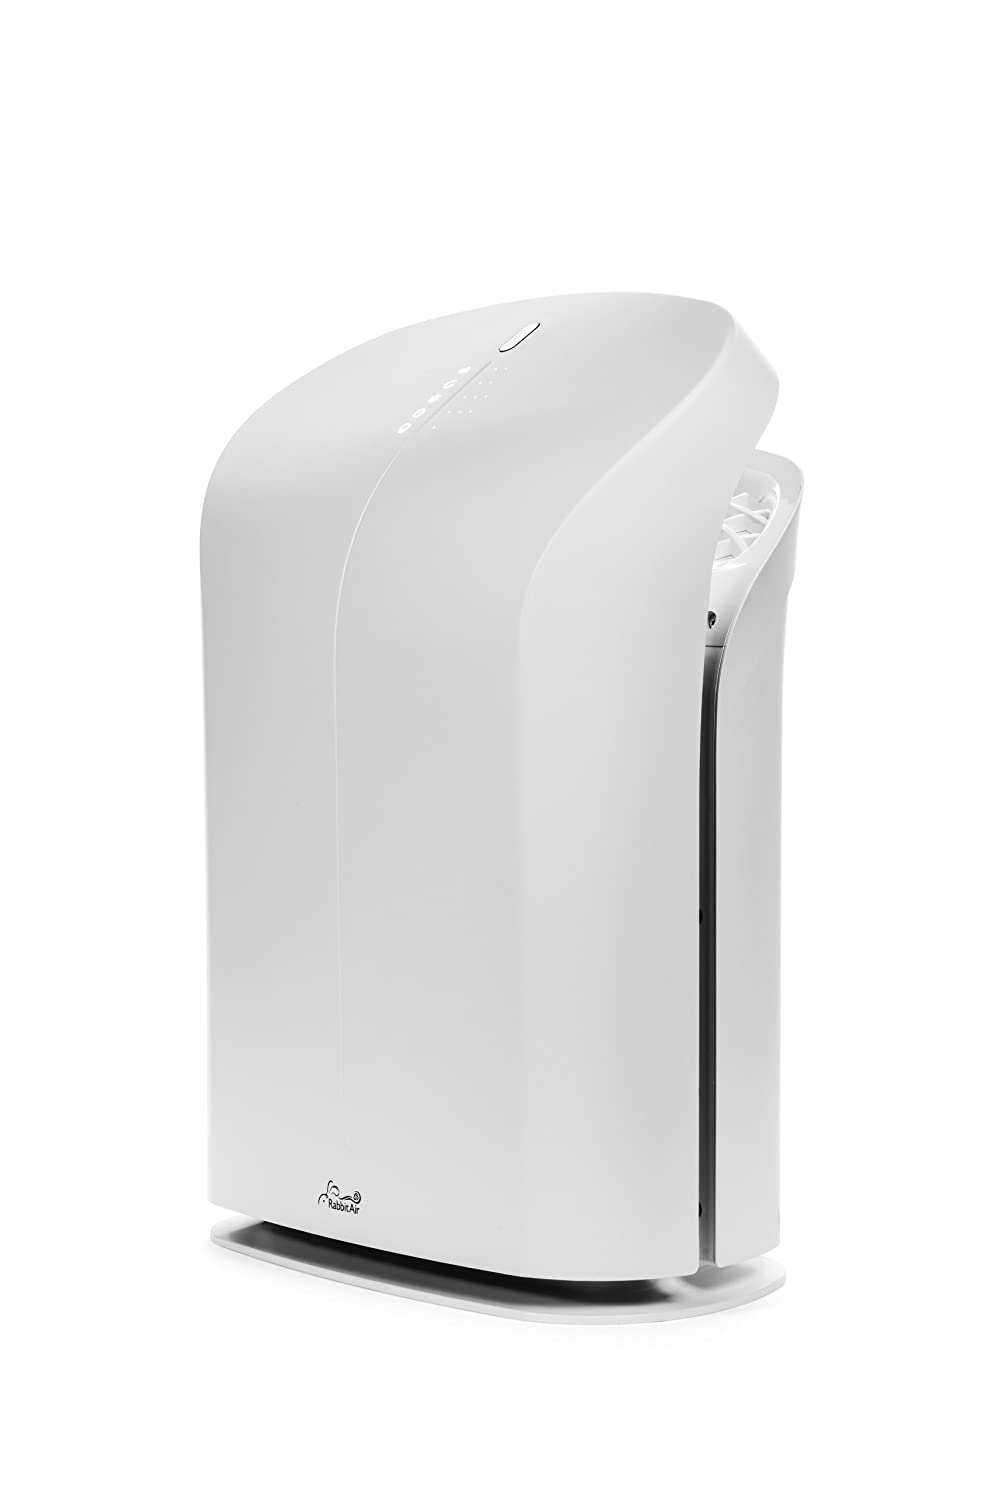 Amazoncom Rabbit Air BioGS Ultra Quiet HEPA Air Purifier SPA - Bathroom air purifier